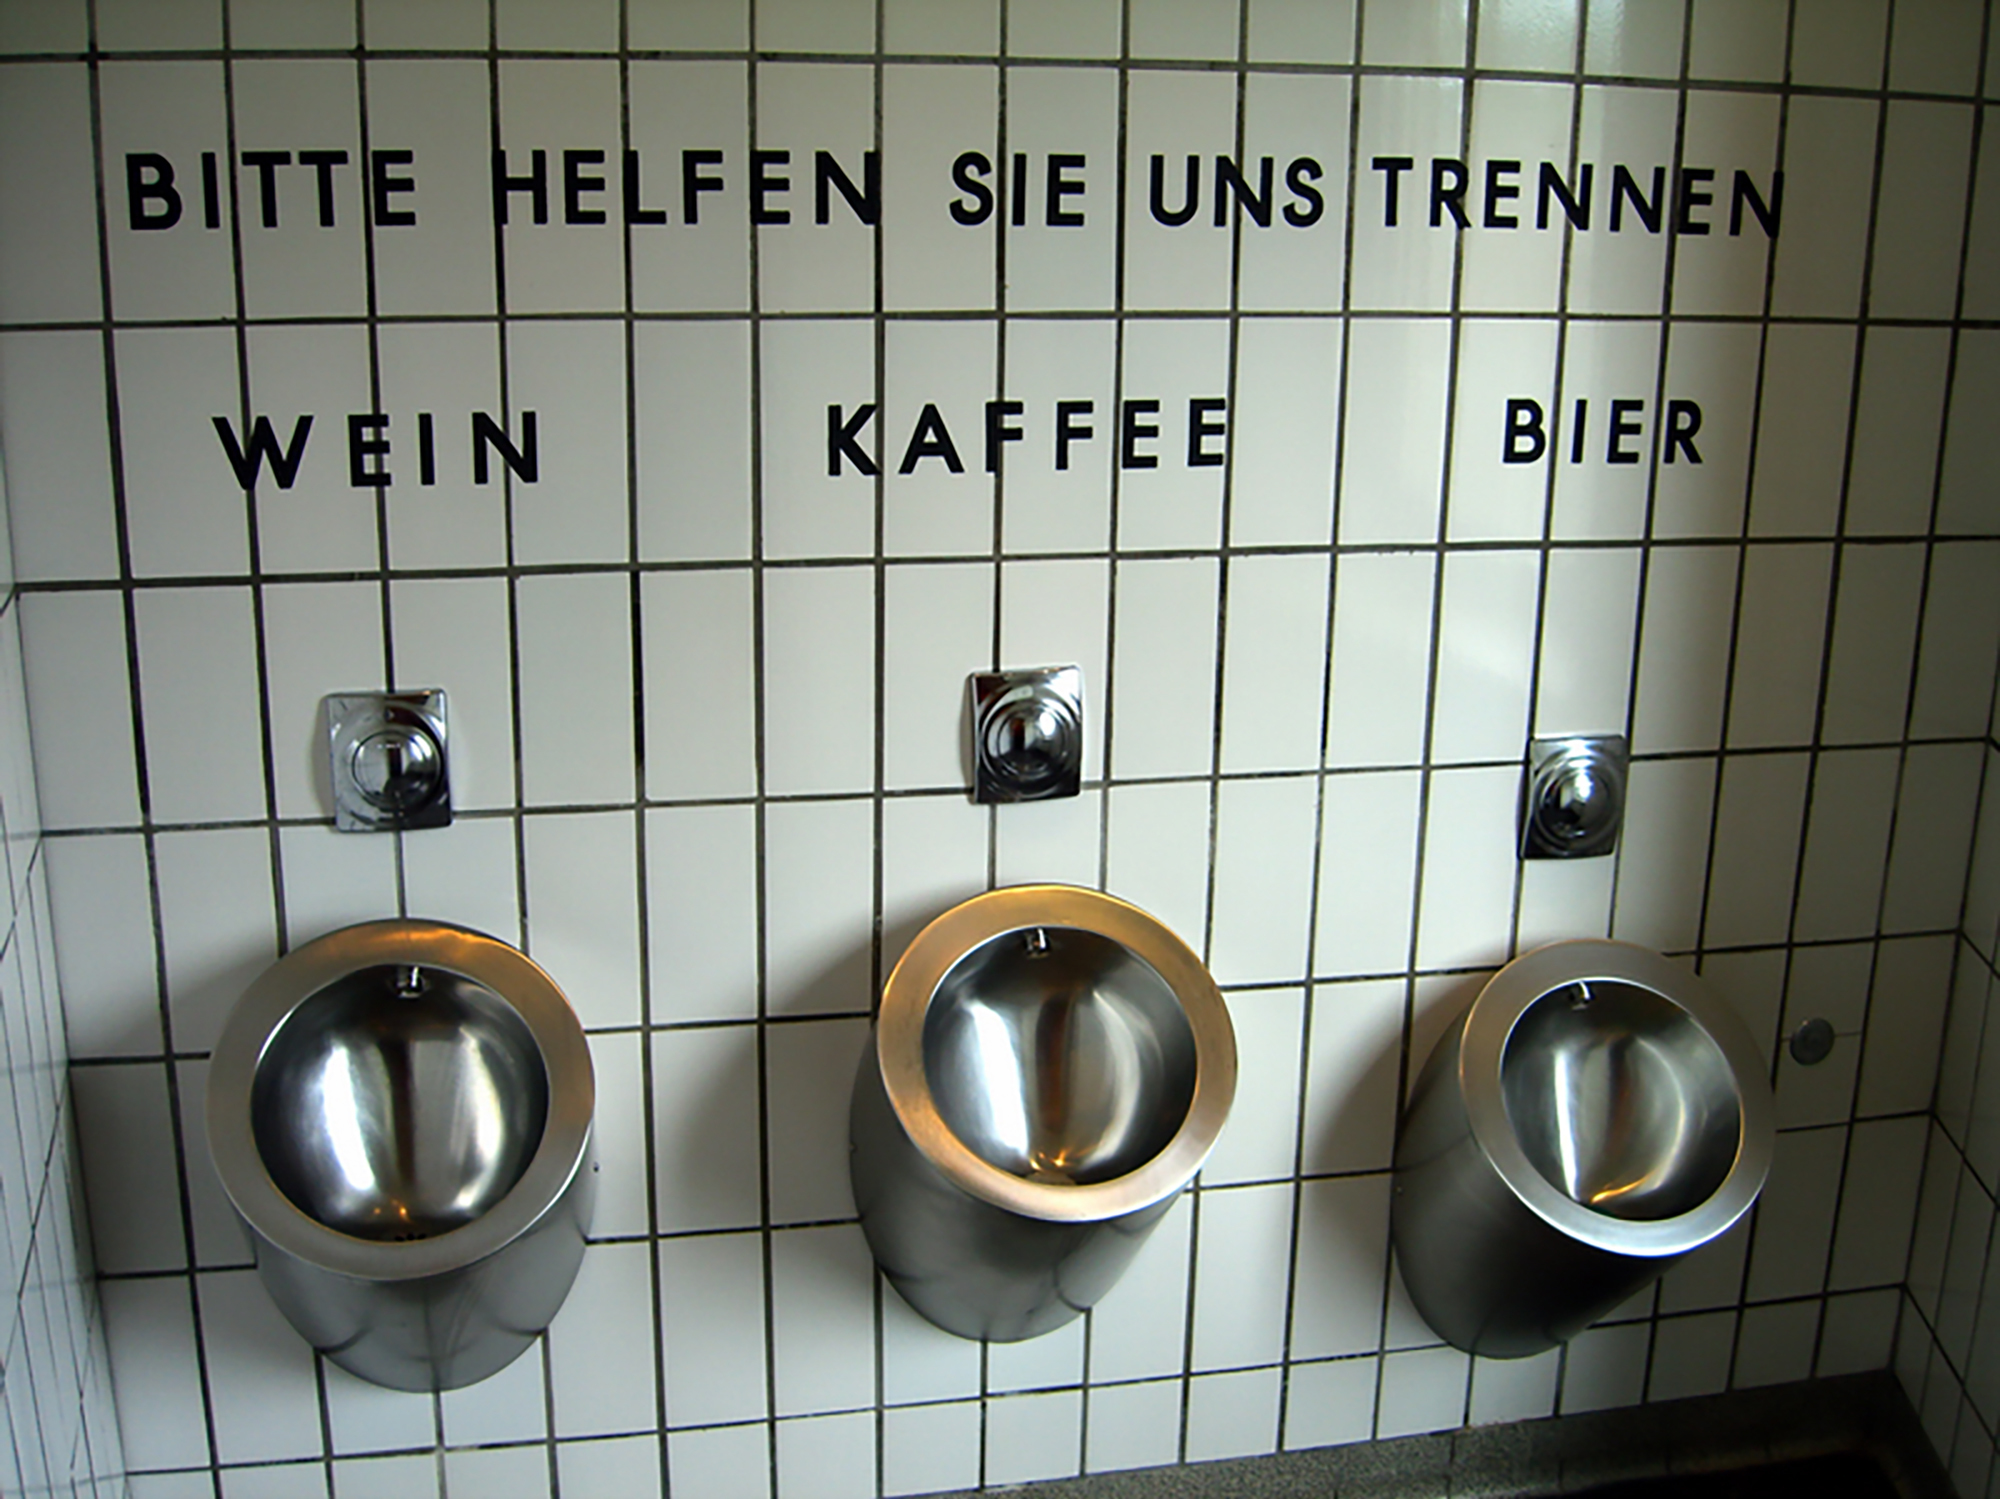 Toilet Signs Give The Scoop On Pee And Poop